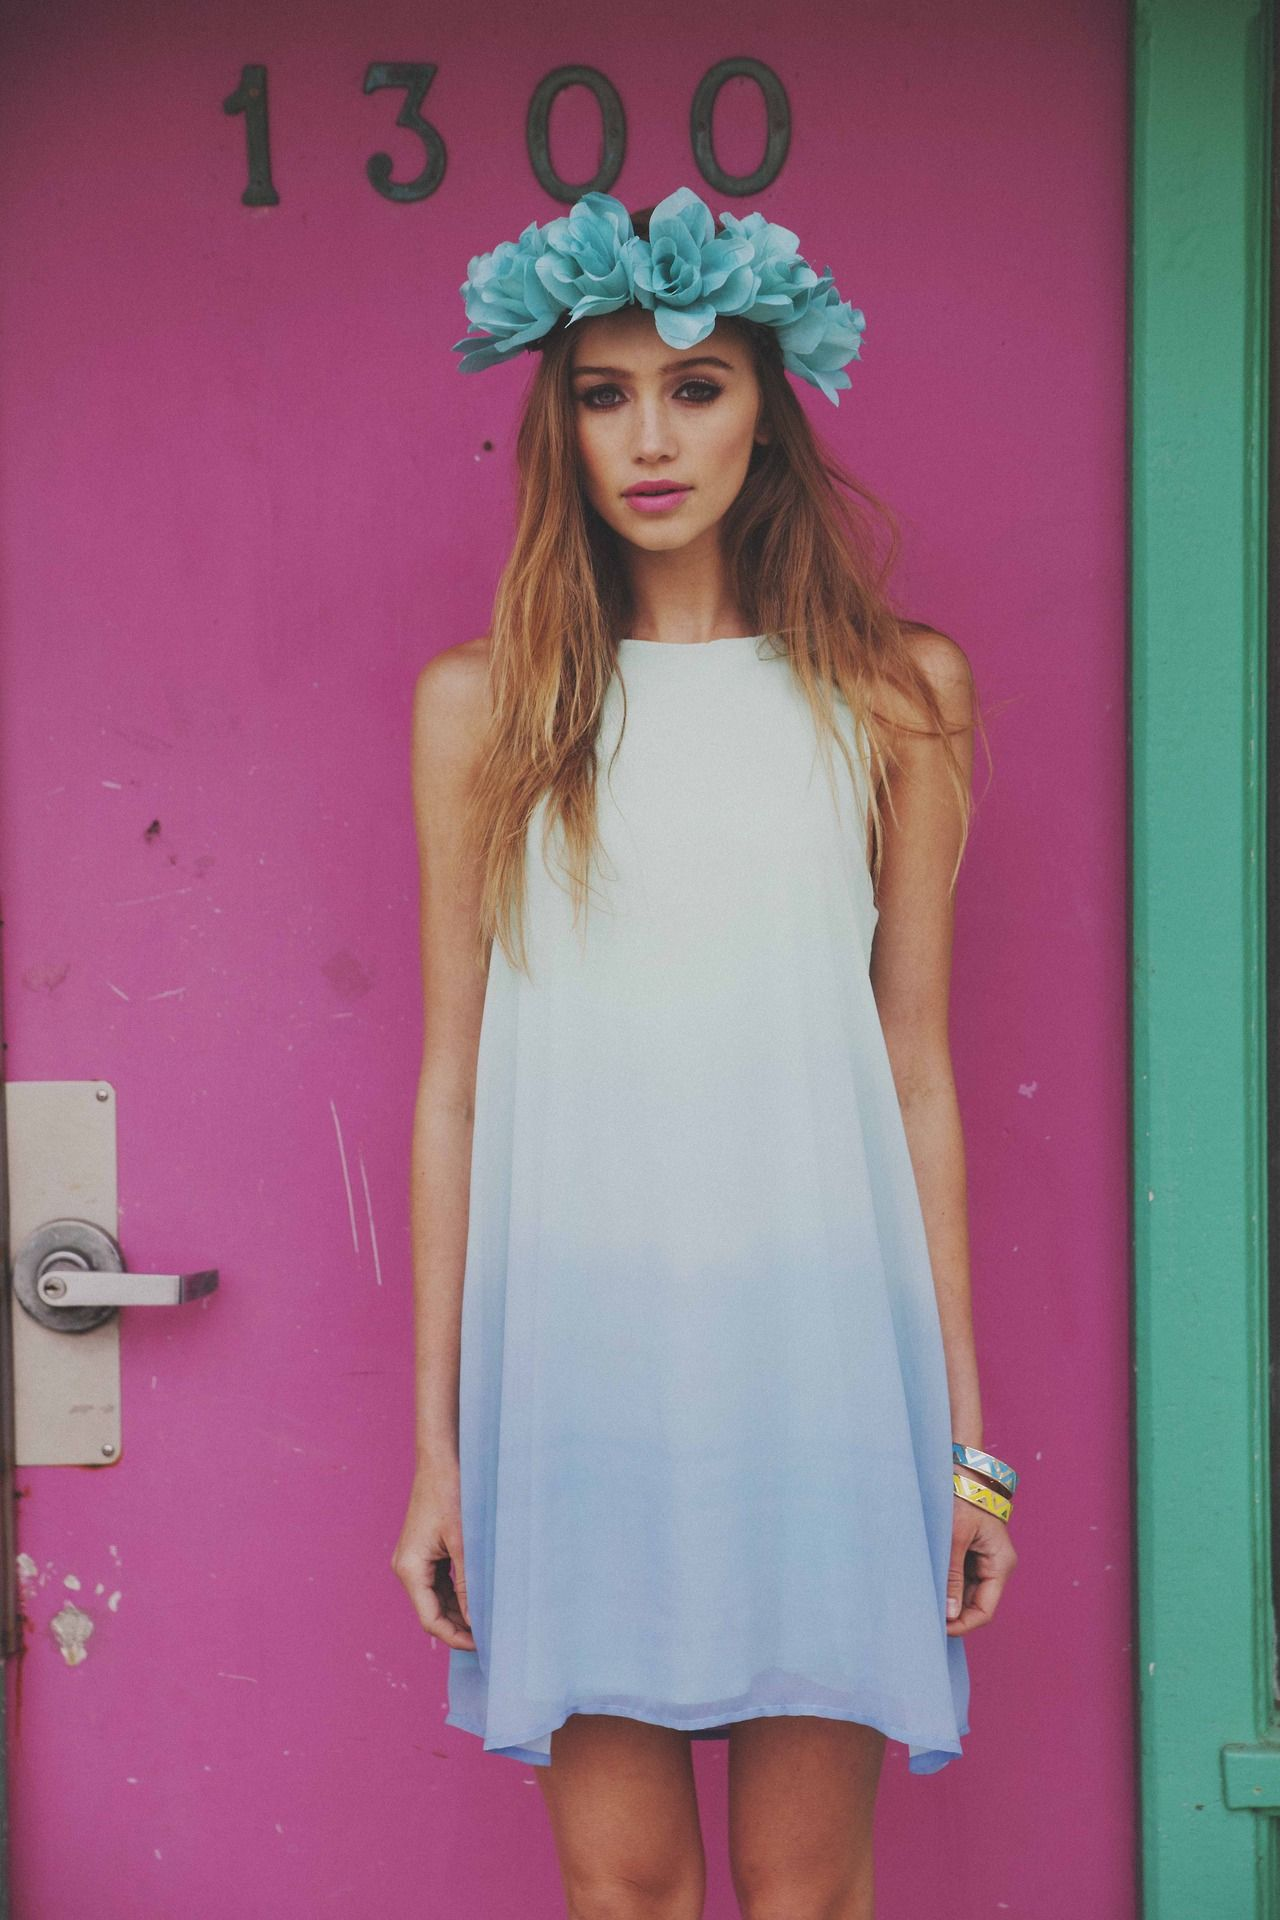 Blue flowers headband with a blue ombre dress and a beautiful pink door in the background...!